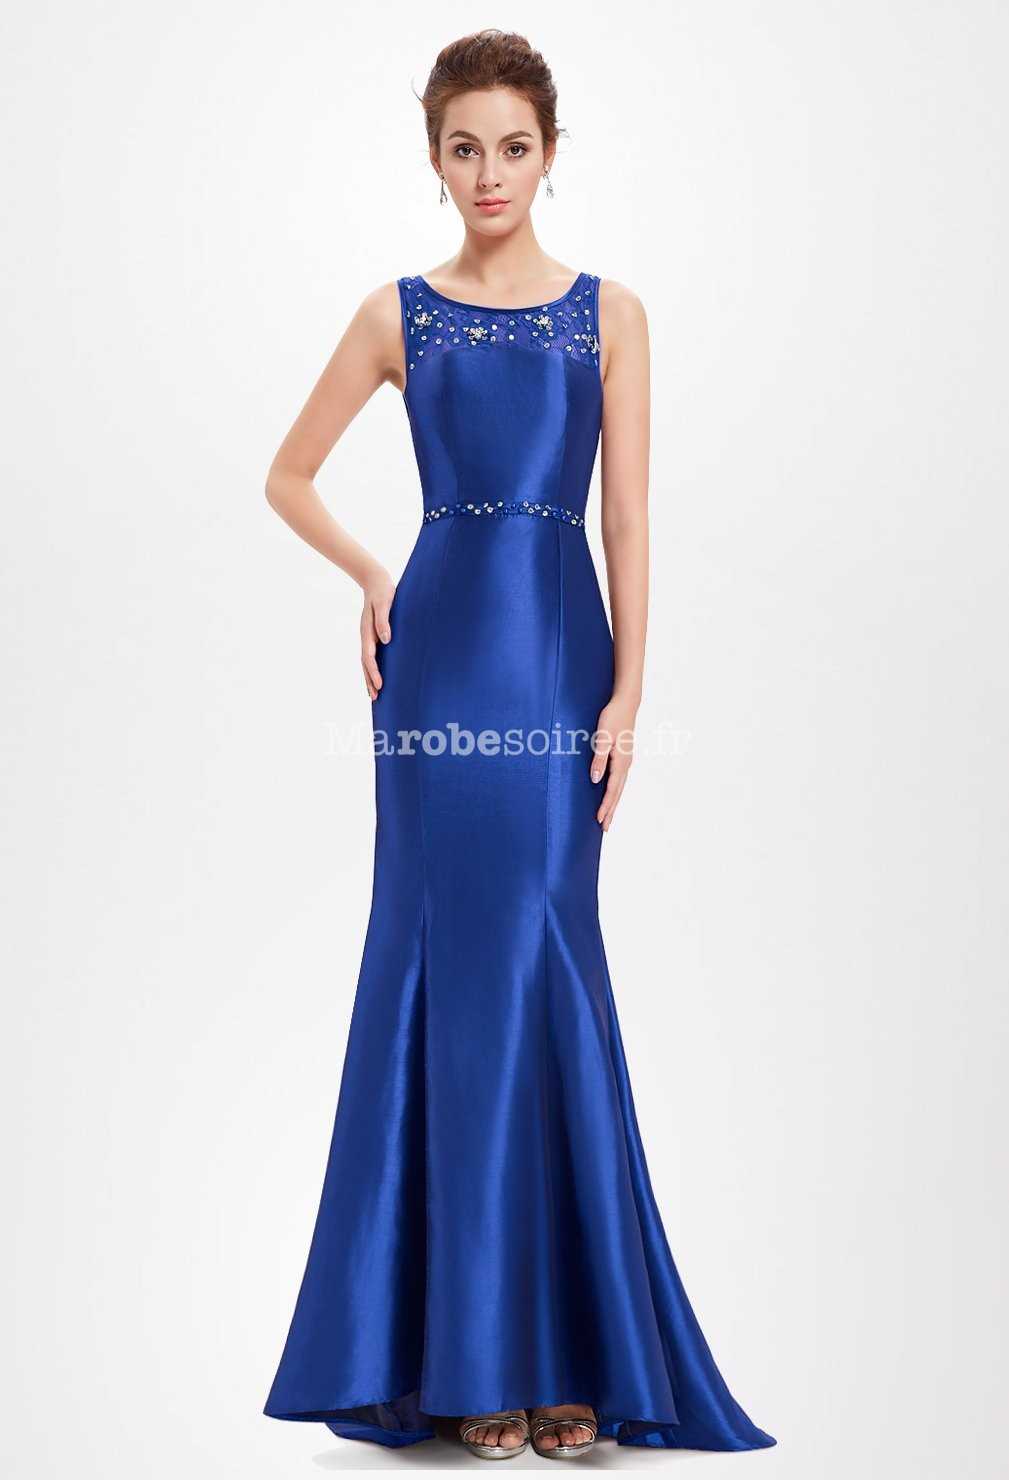 Robe cocktail bleu saphir